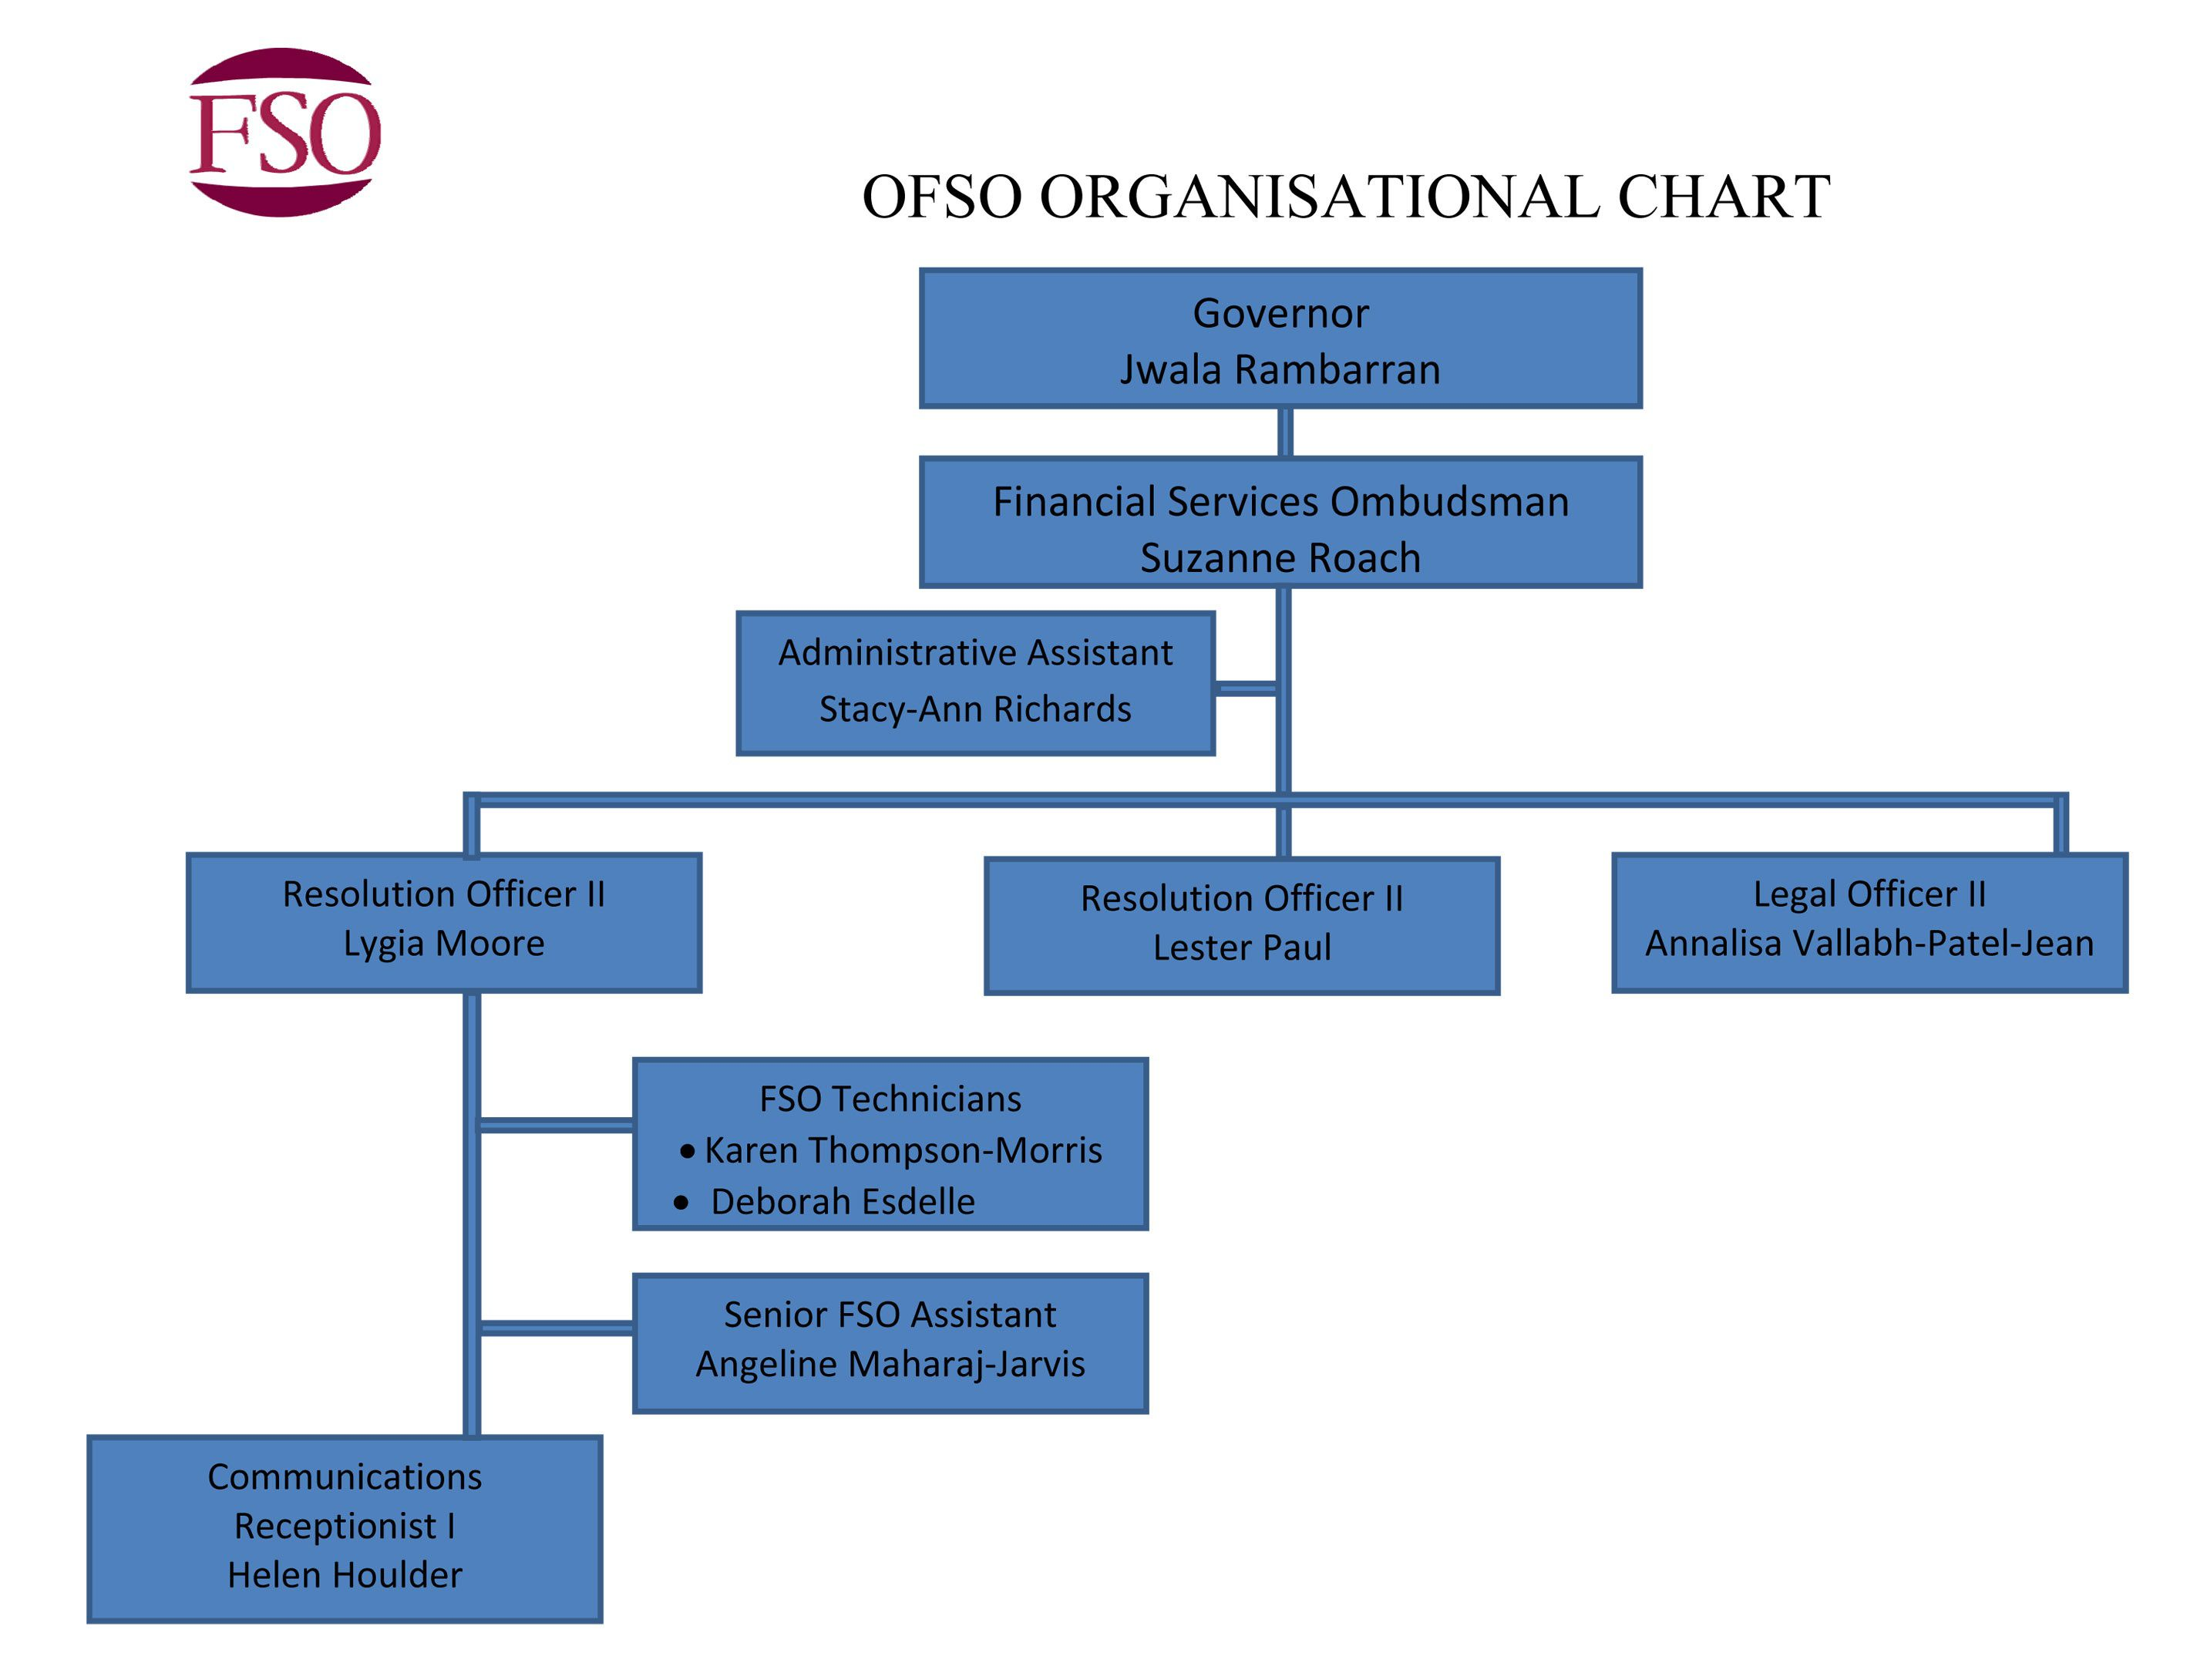 003 Fascinating Org Chart Template Excel 2013 High Def  OrganizationalFull